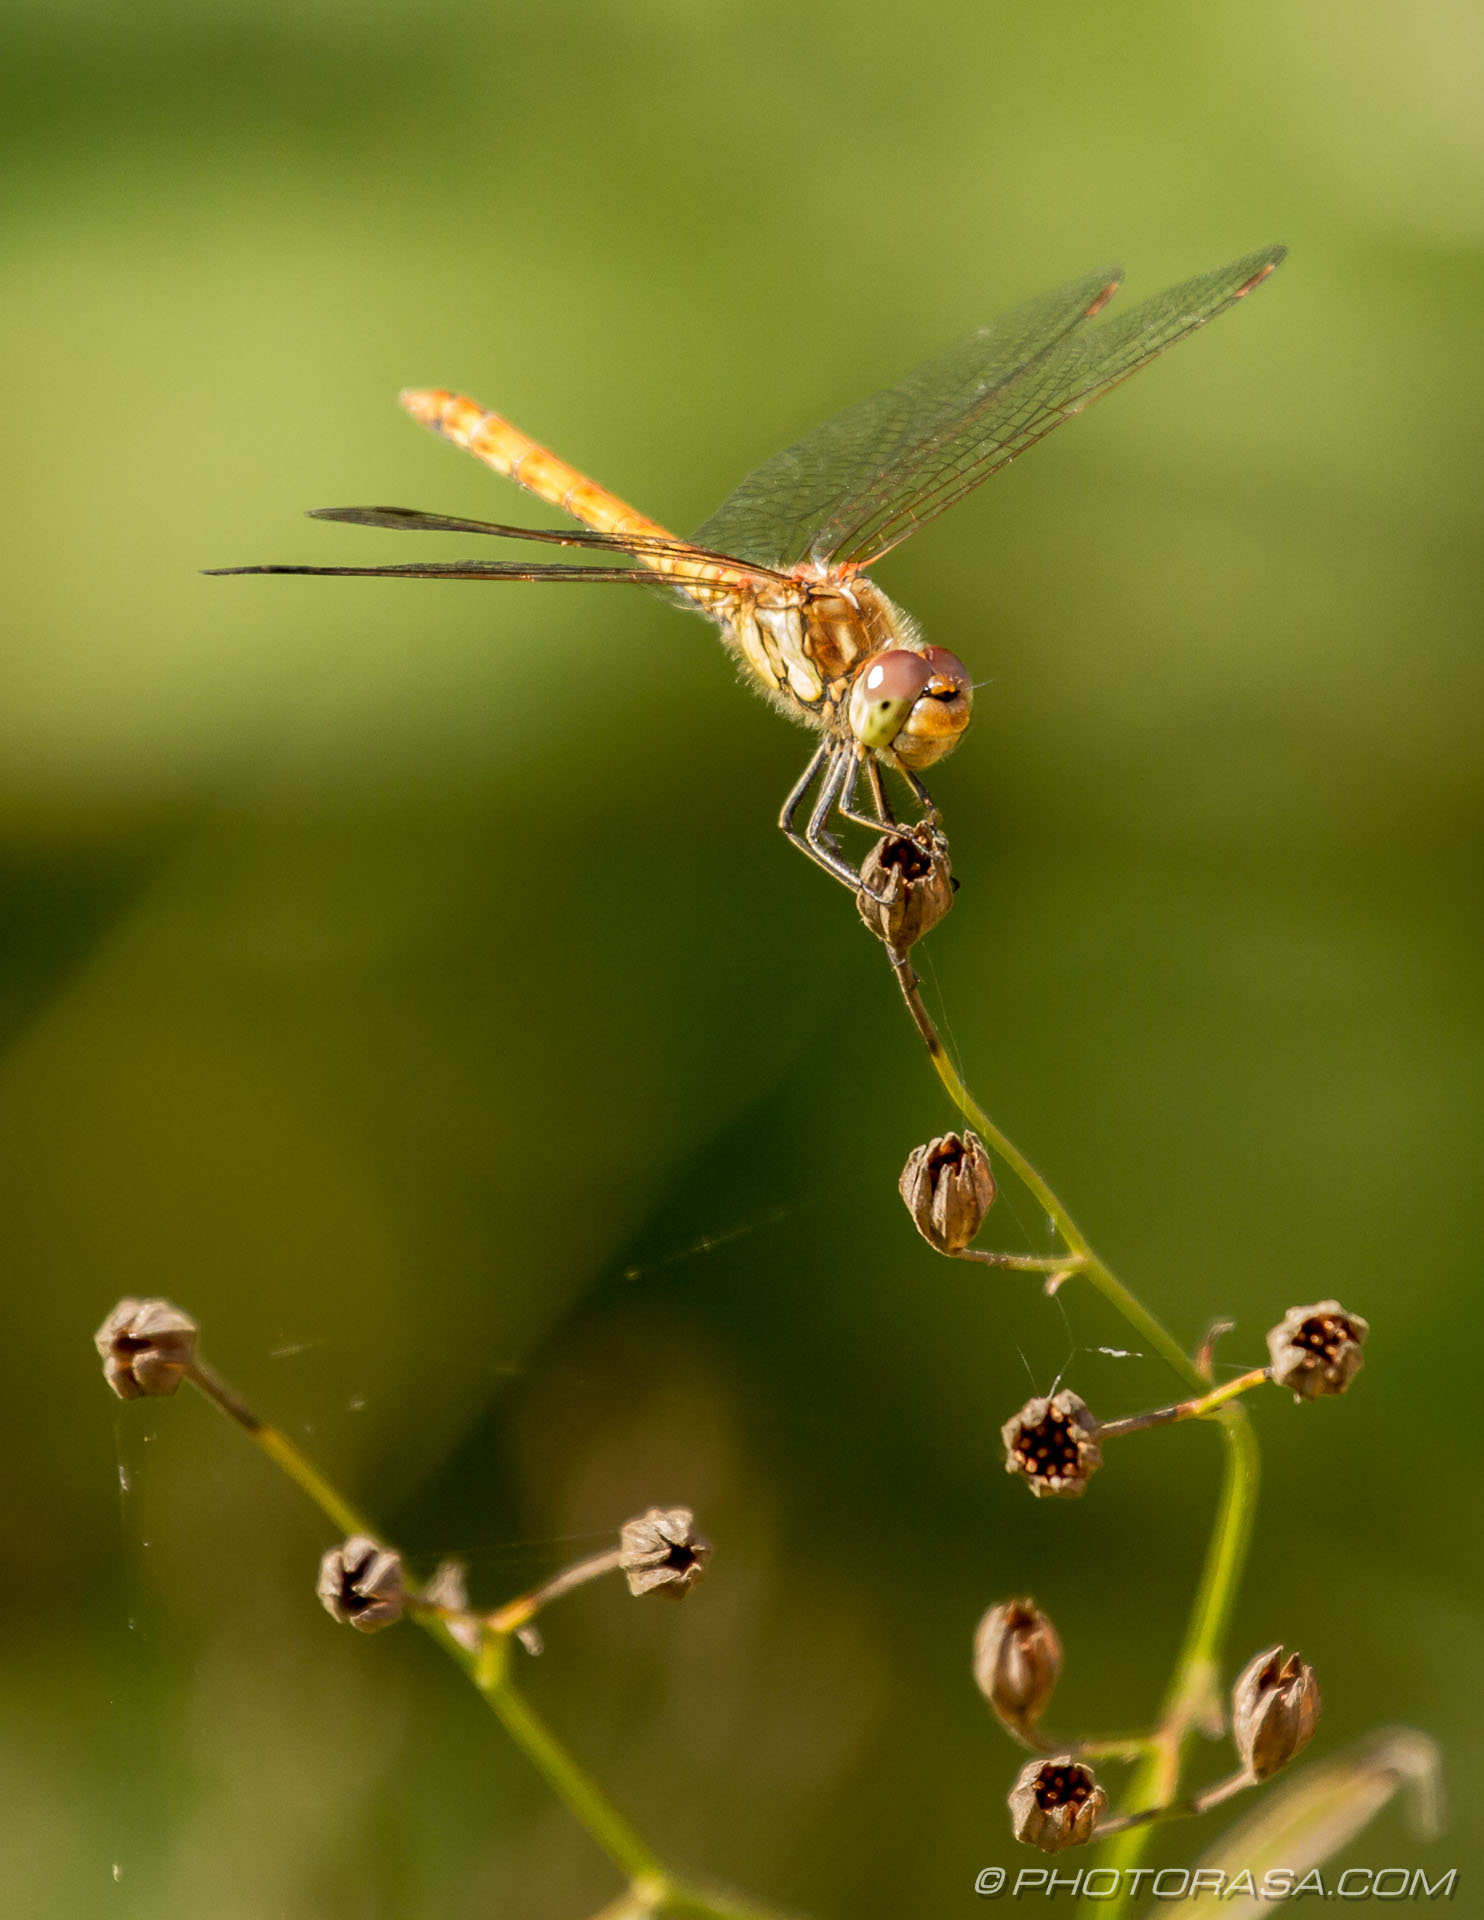 http://photorasa.com/dragonflies/female-common-darter-perched-on-plant/